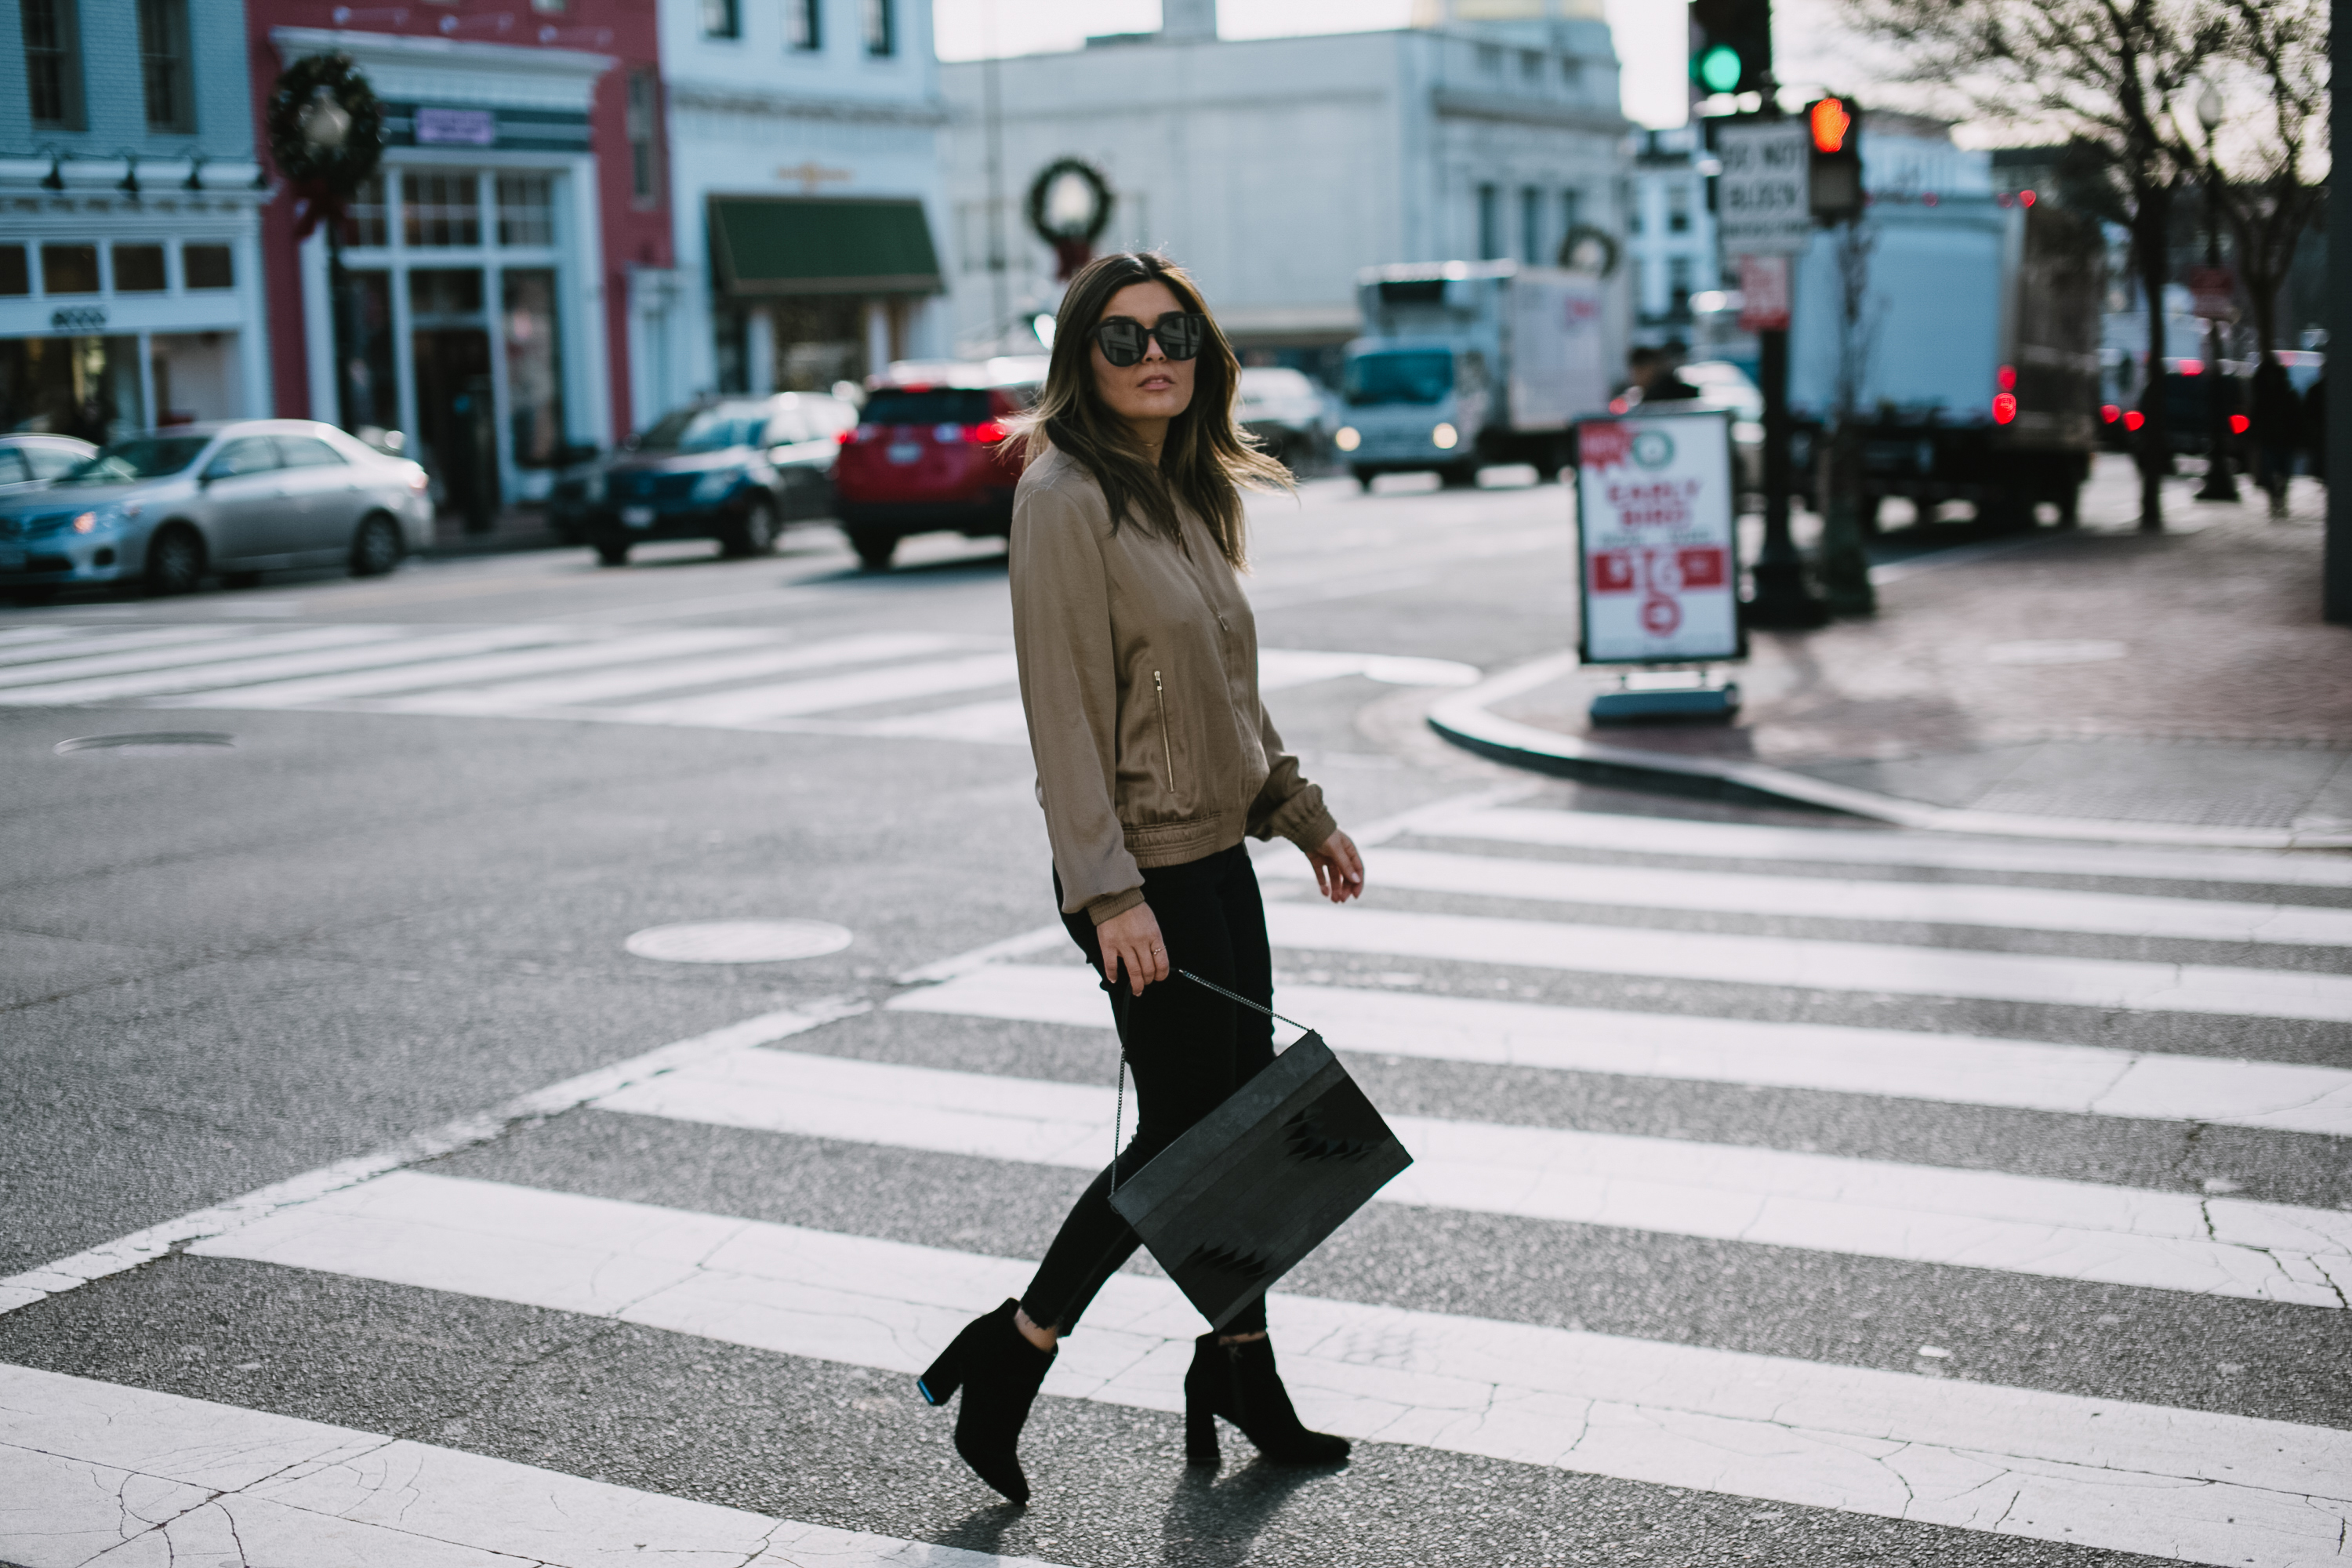 Blogger Sara Azani of Style MBA is photographed wearing Lafayette 148 New York Bryant satin bomber jacket, Quay Australia black oversize sunglasses, J Brand Coated Skinny Jeans, Target paisley booties, and limited edition ITA for Lafayette 148 New York Shantou Pouchette purse. Petite brunette woman wearing simple neutral outfit walking in Georgetown, Washington DC.